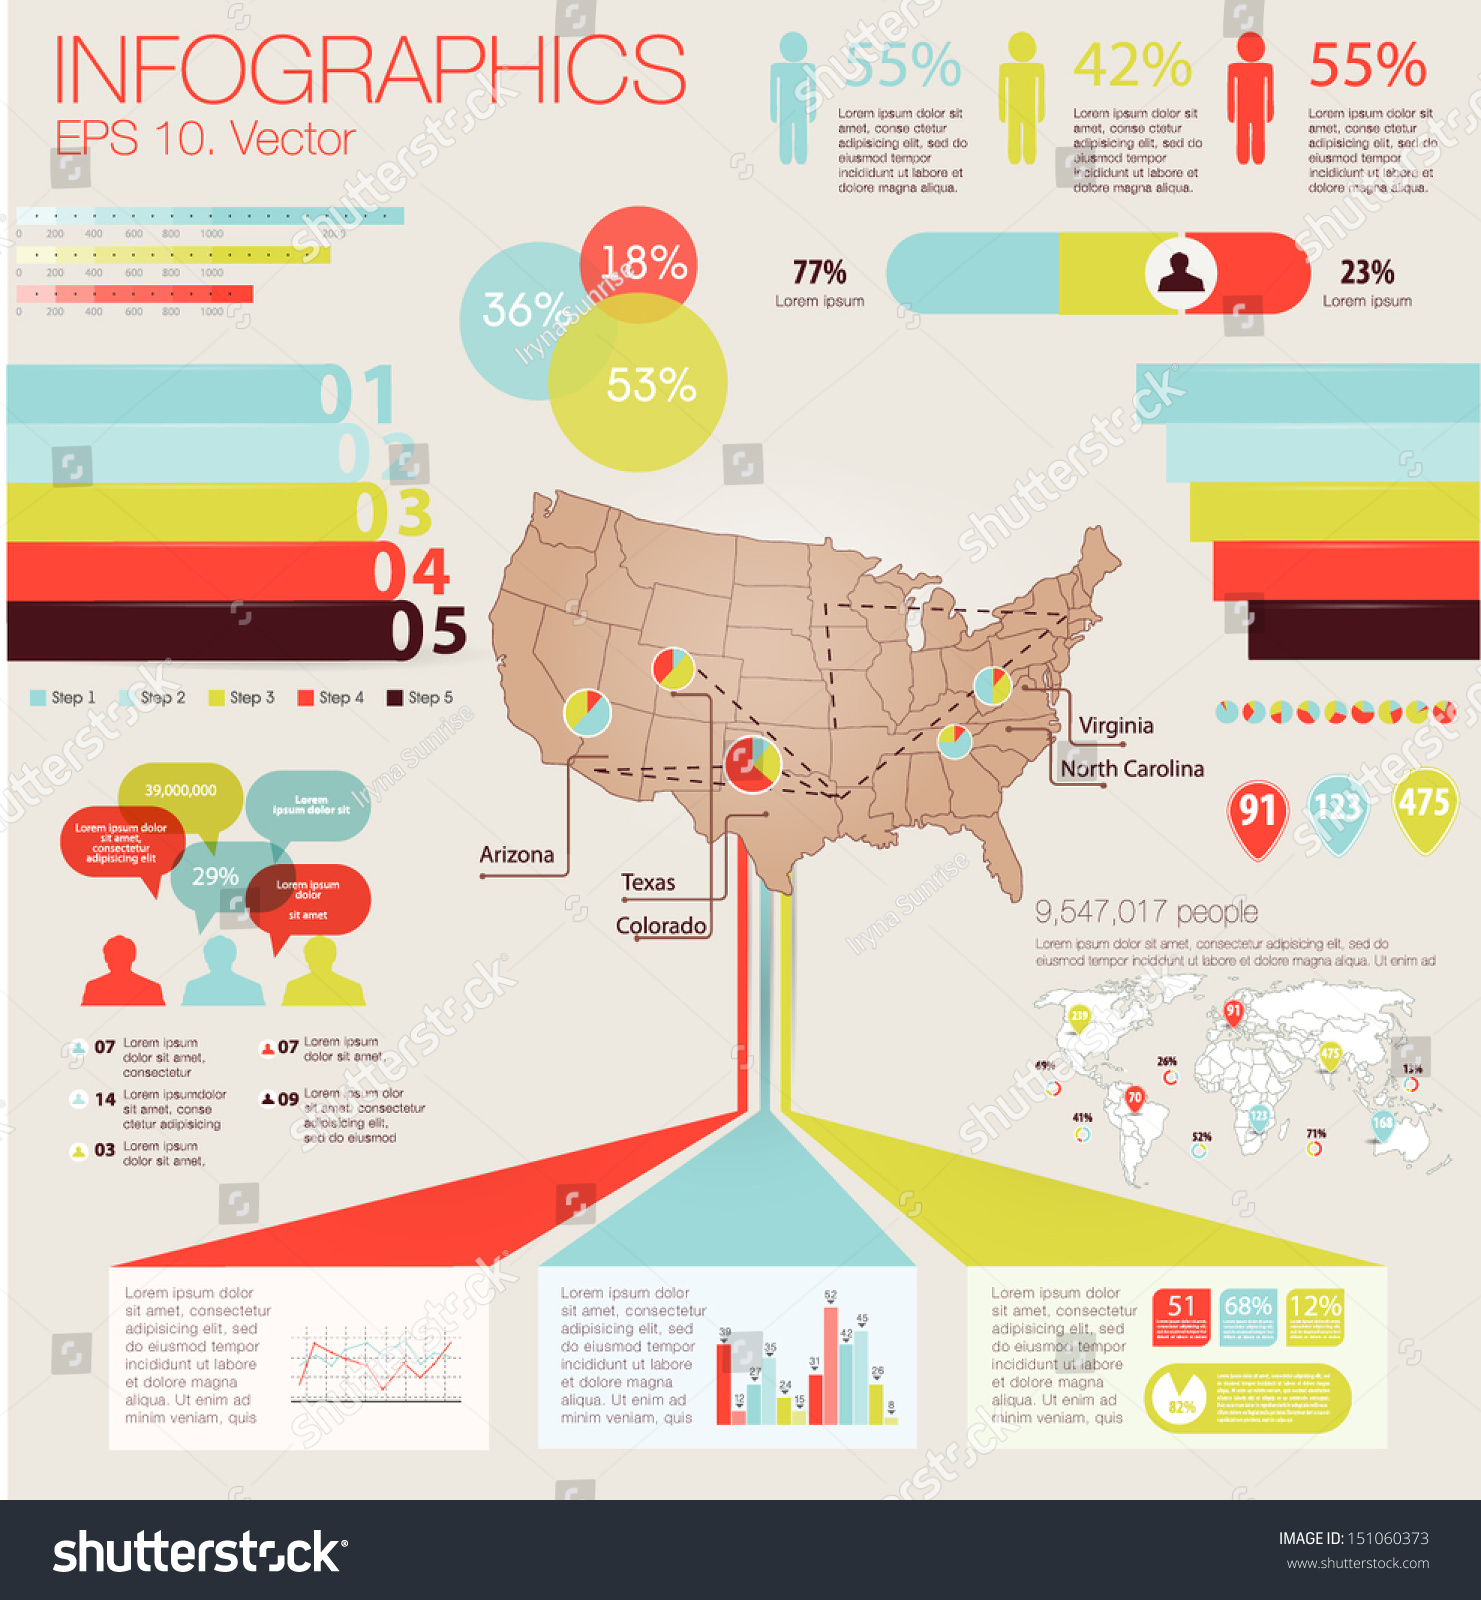 Detail modern infographic vector illustration map stock vector detail modern infographic vector illustration with map of united state of america information graphics gumiabroncs Images